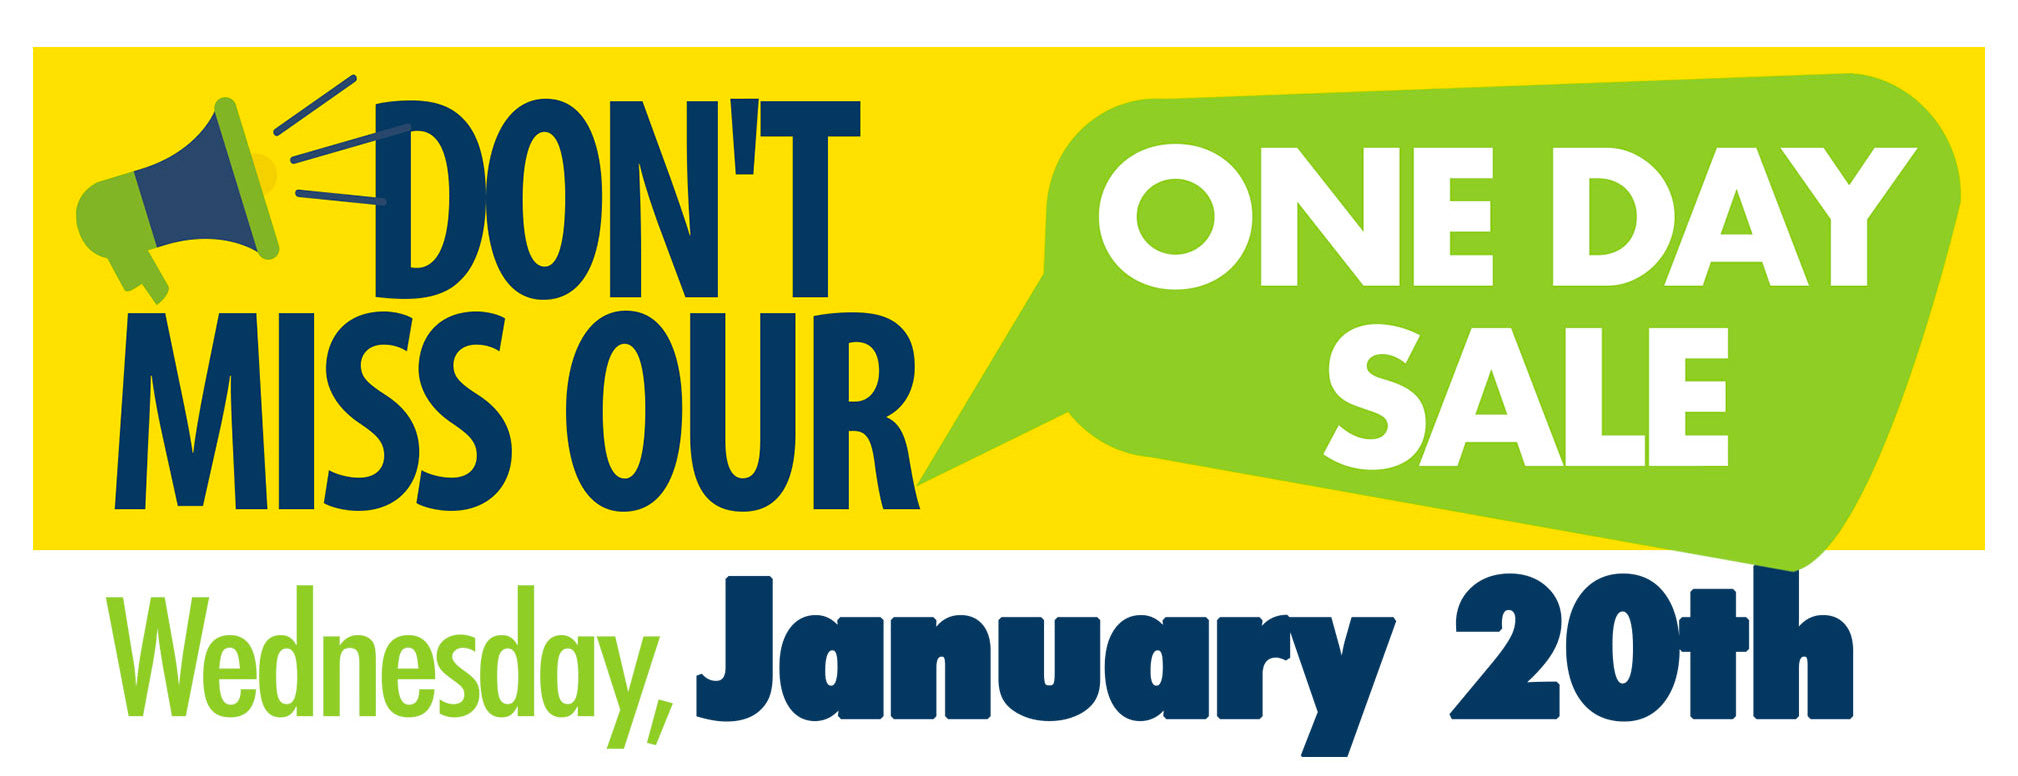 DON'T MISS OUR ONE DAY SALE JANUARY 20TH